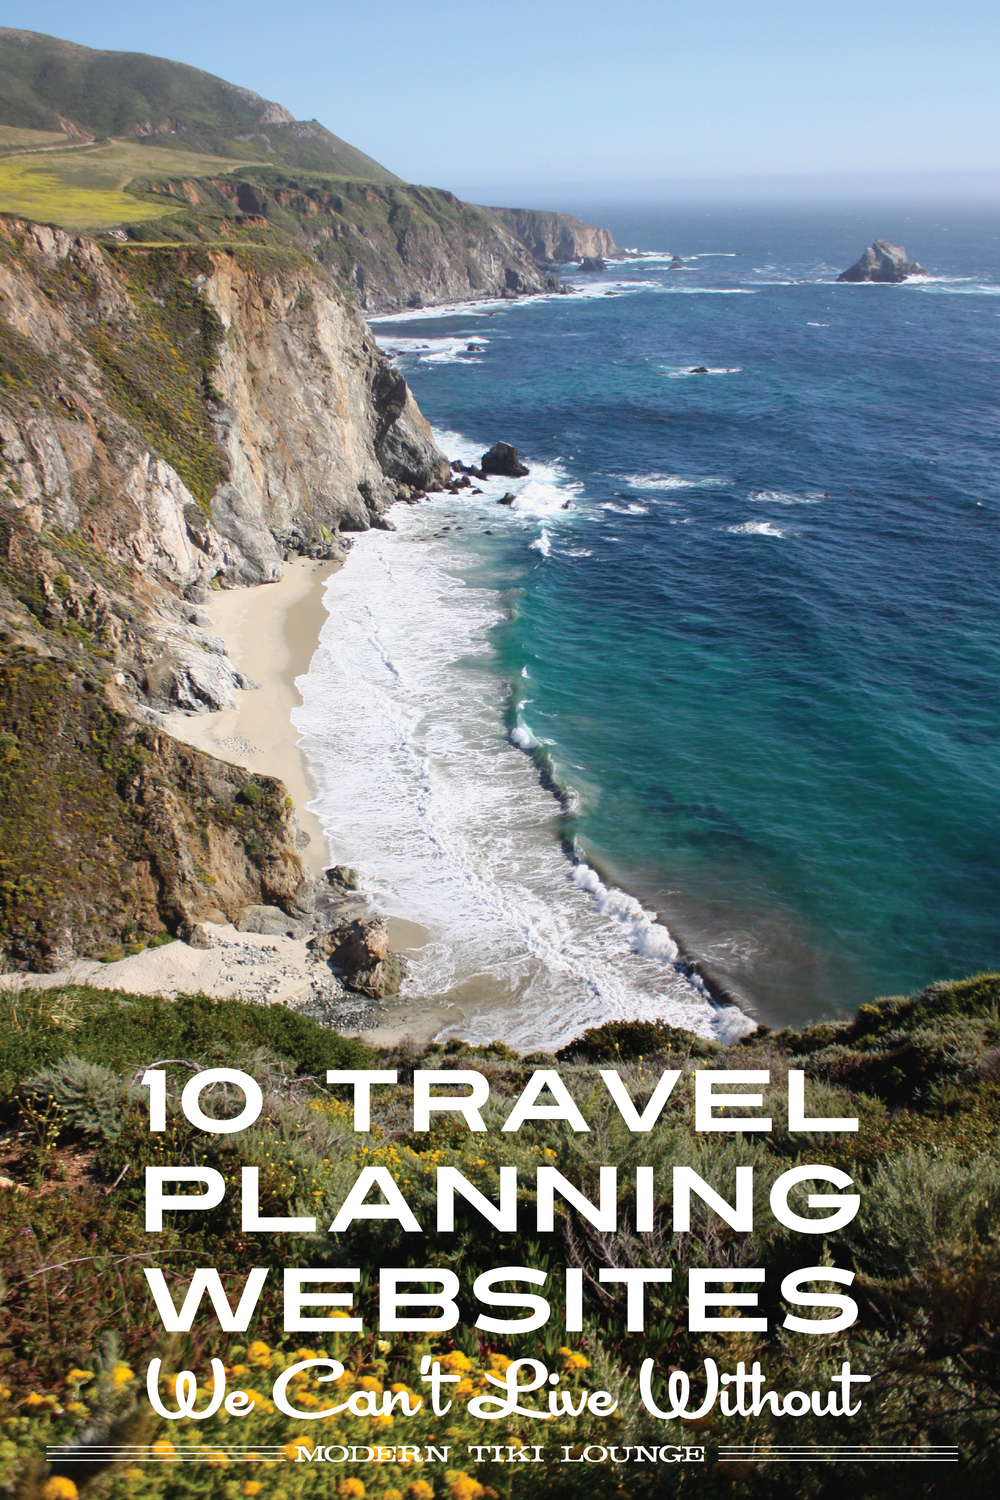 10-travel-planning-websites.jpg